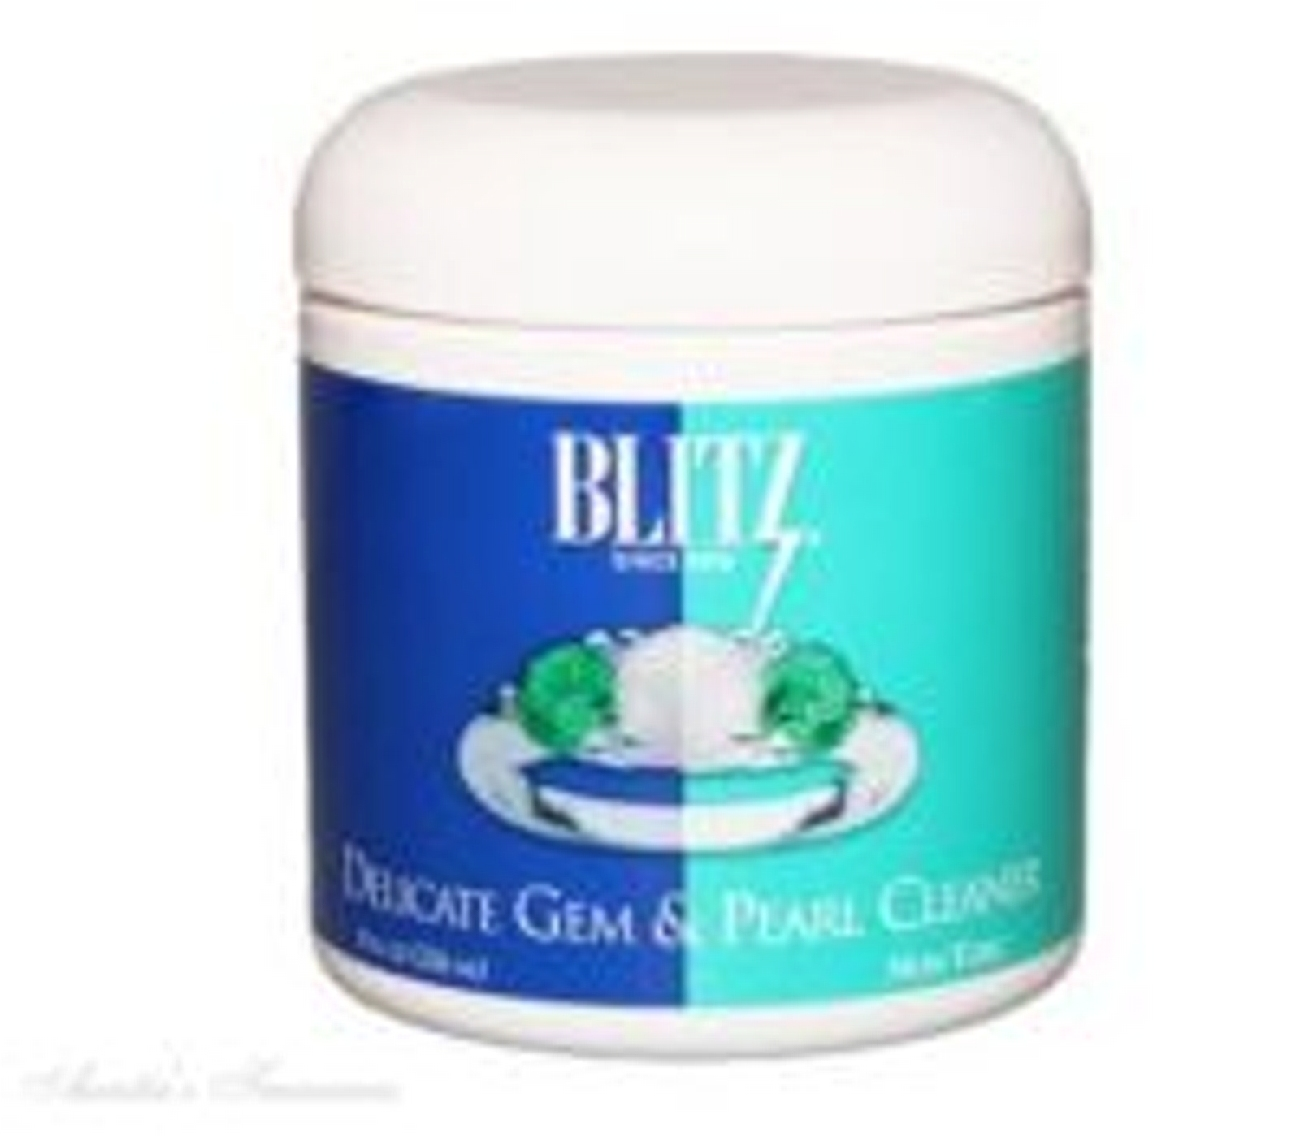 Blitz Delicate Gem & Pearl Cleaner